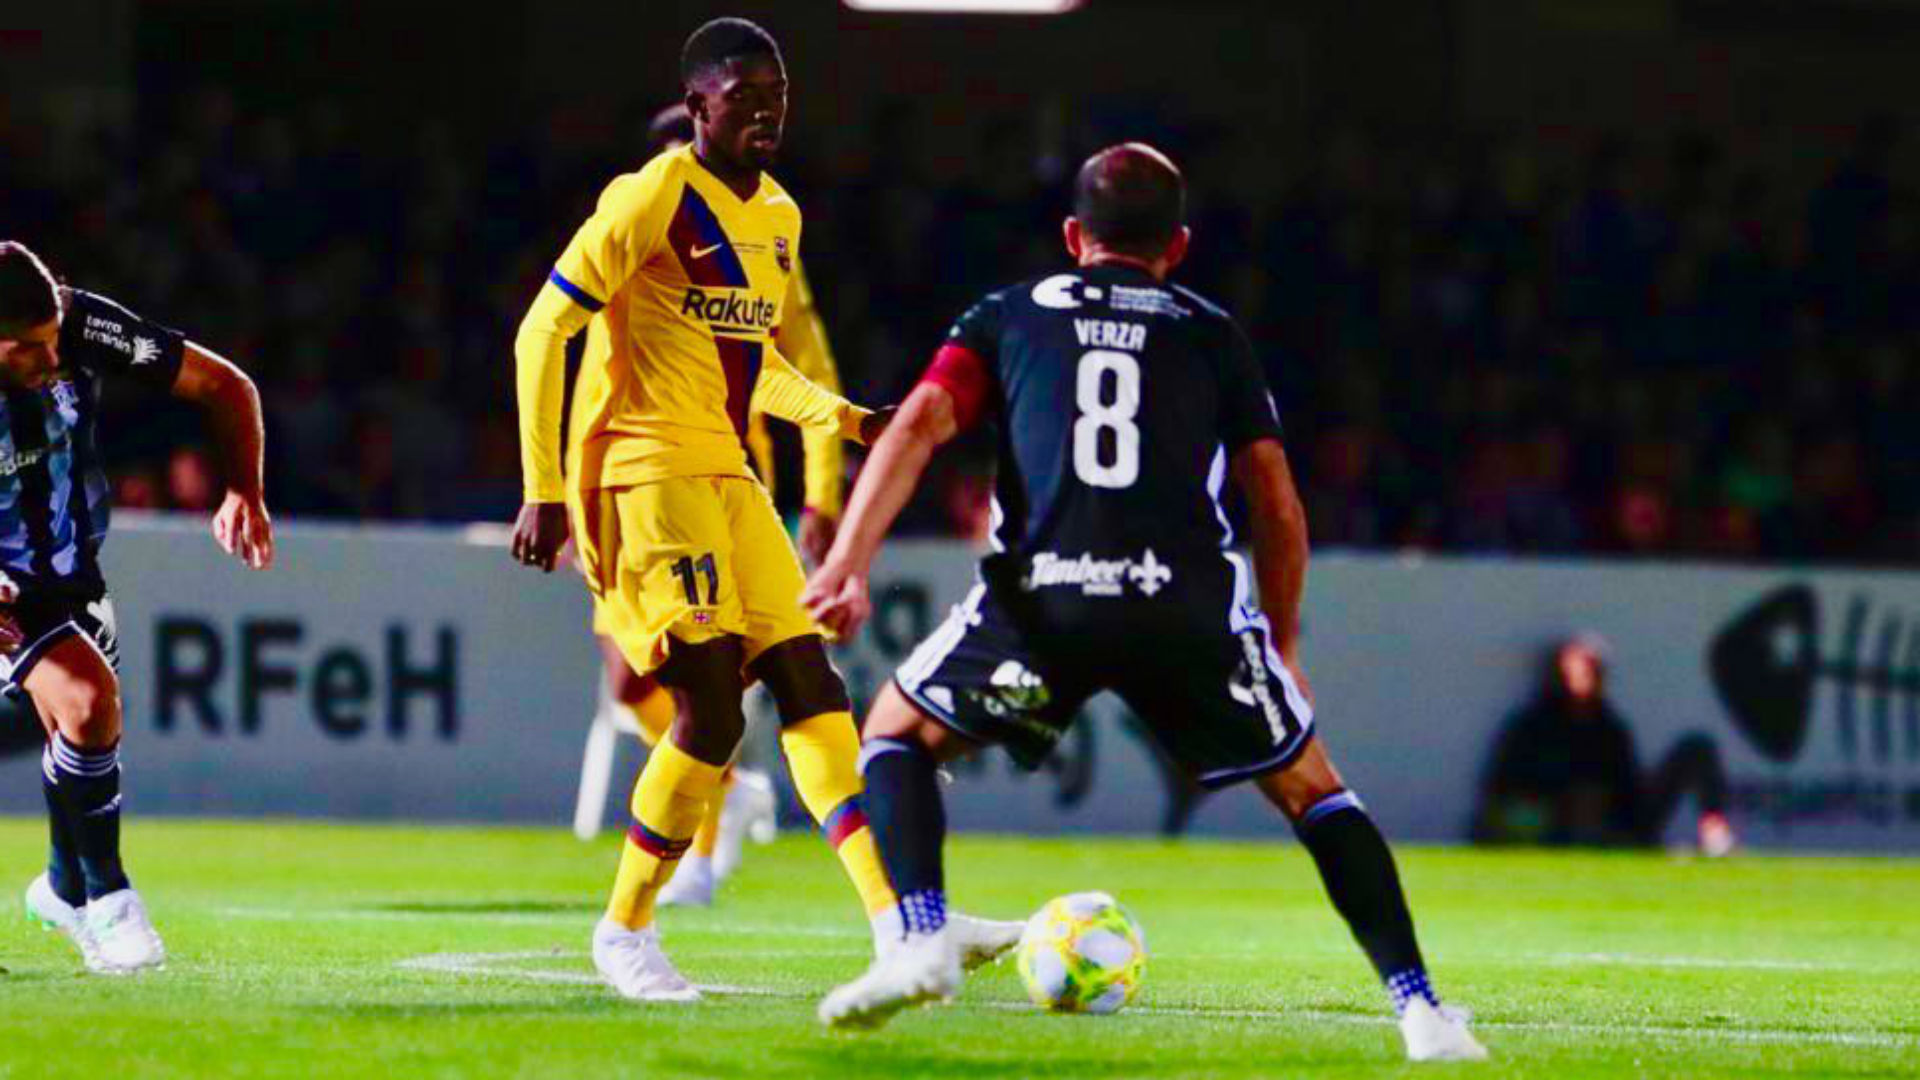 Puig impresses as Barcelona beat Cartagena in charity match